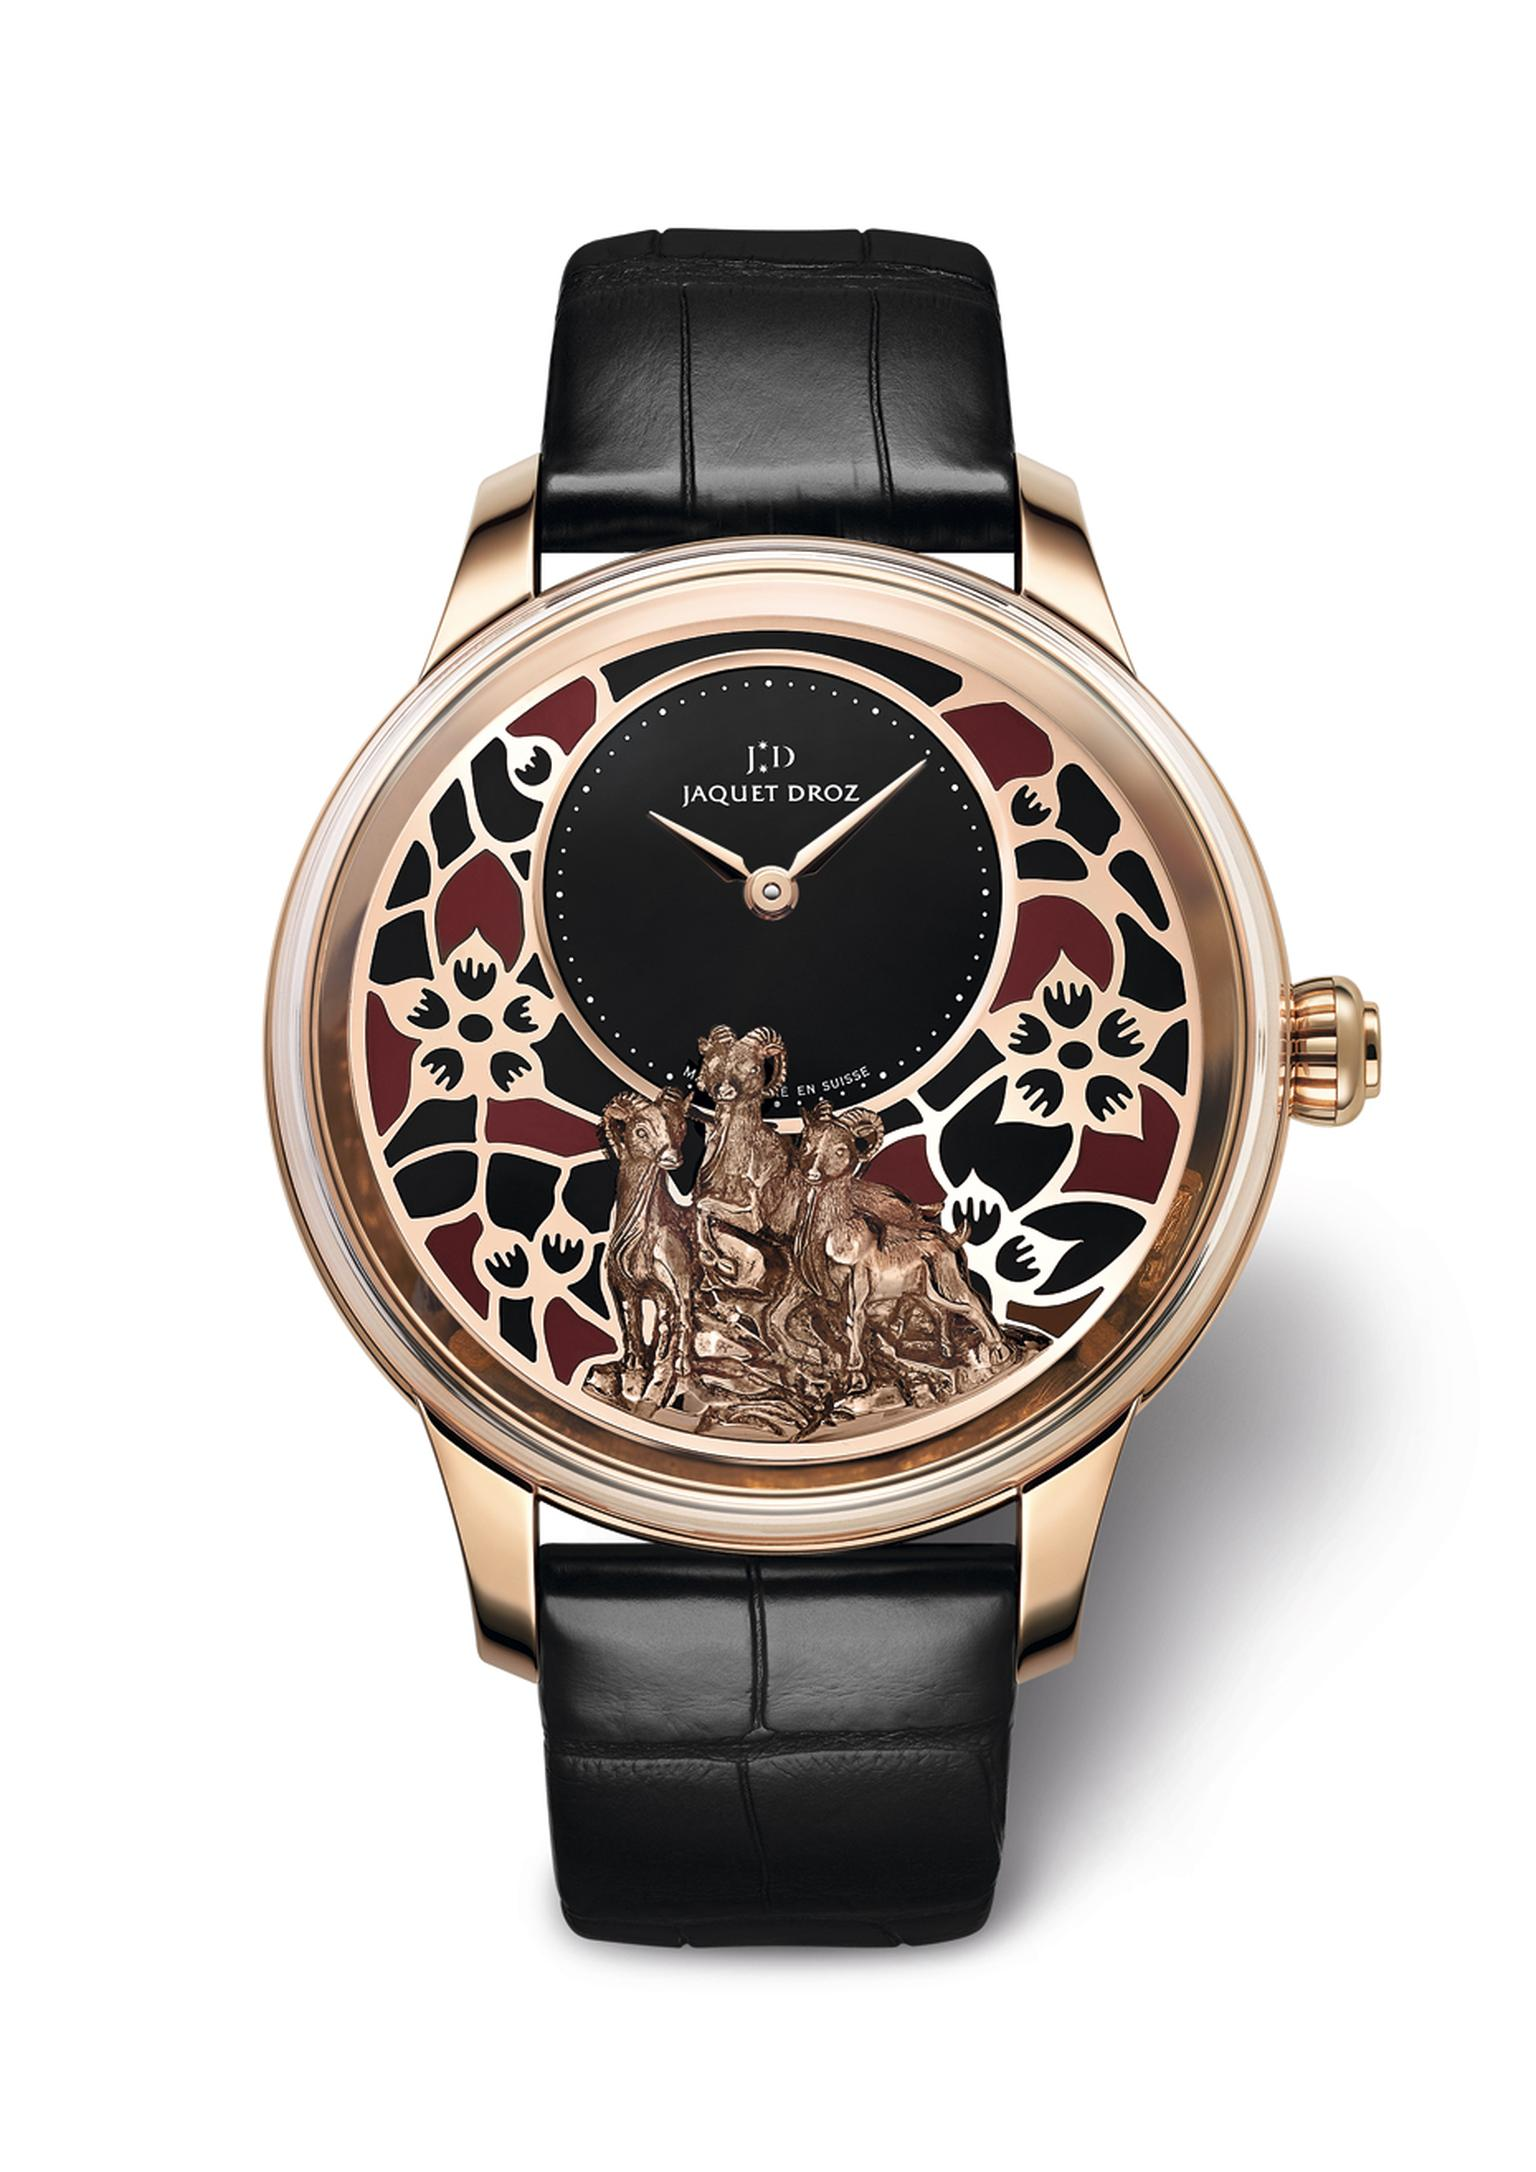 The red gold 41 mm Petite Heure Model by Jaquet Droz features the same plum blossom motif against a black onyx background. Both models, in red gold and white gold, are limited to 28 pieces.